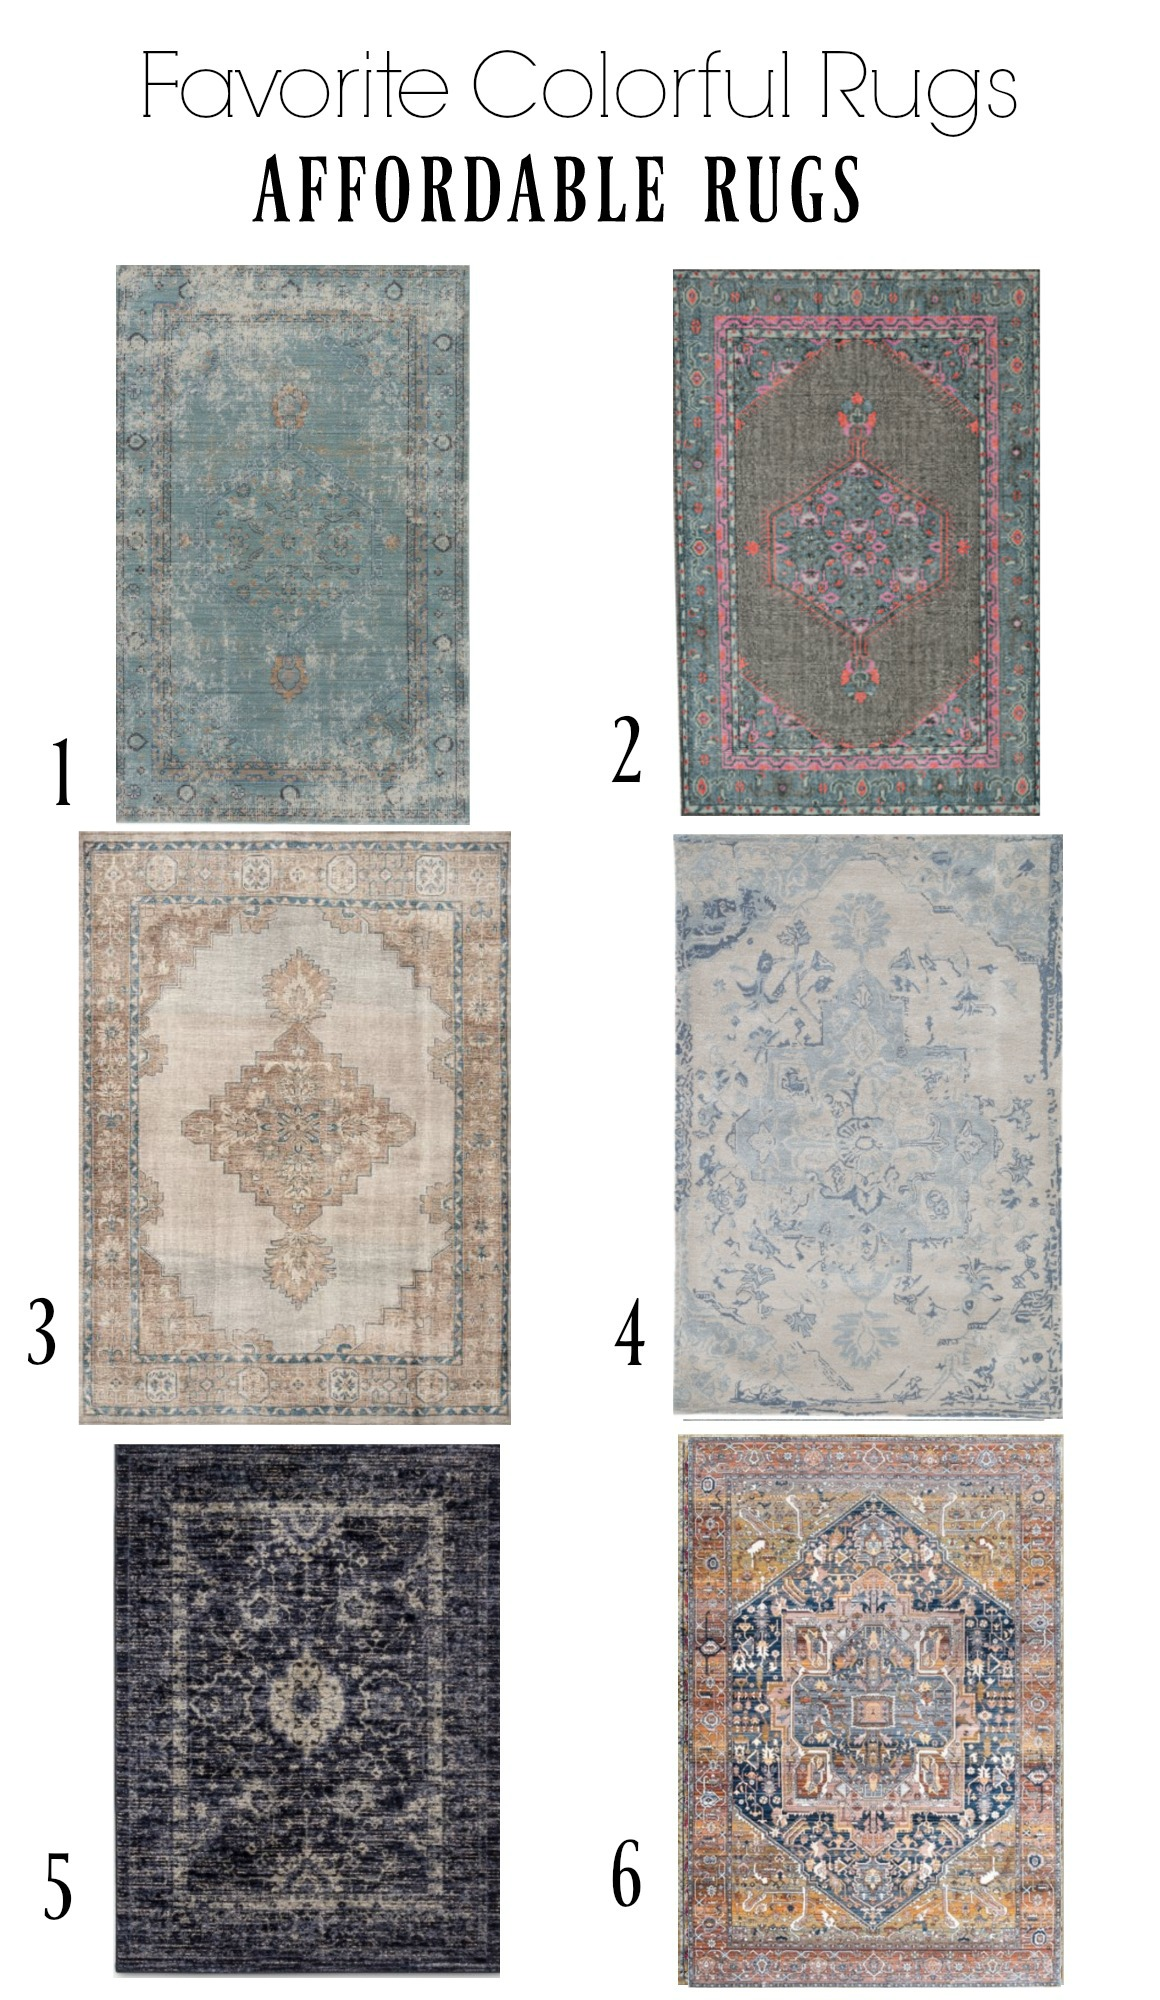 Affordable Colorful Rugs- Timeless Rugs